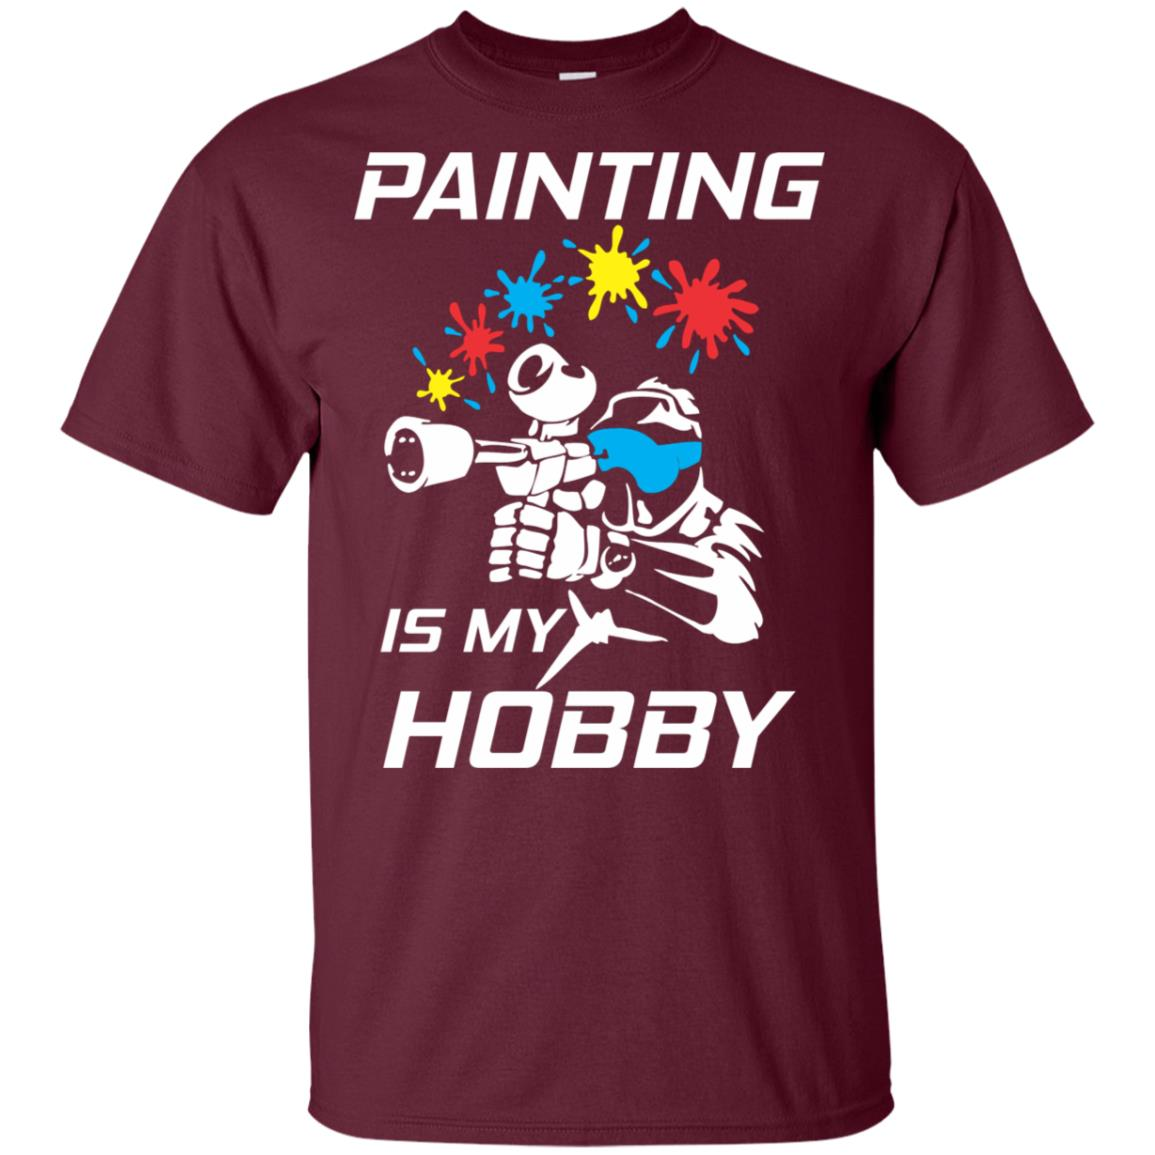 Painting Is My Hobby Paintball Unisex Short Sleeve